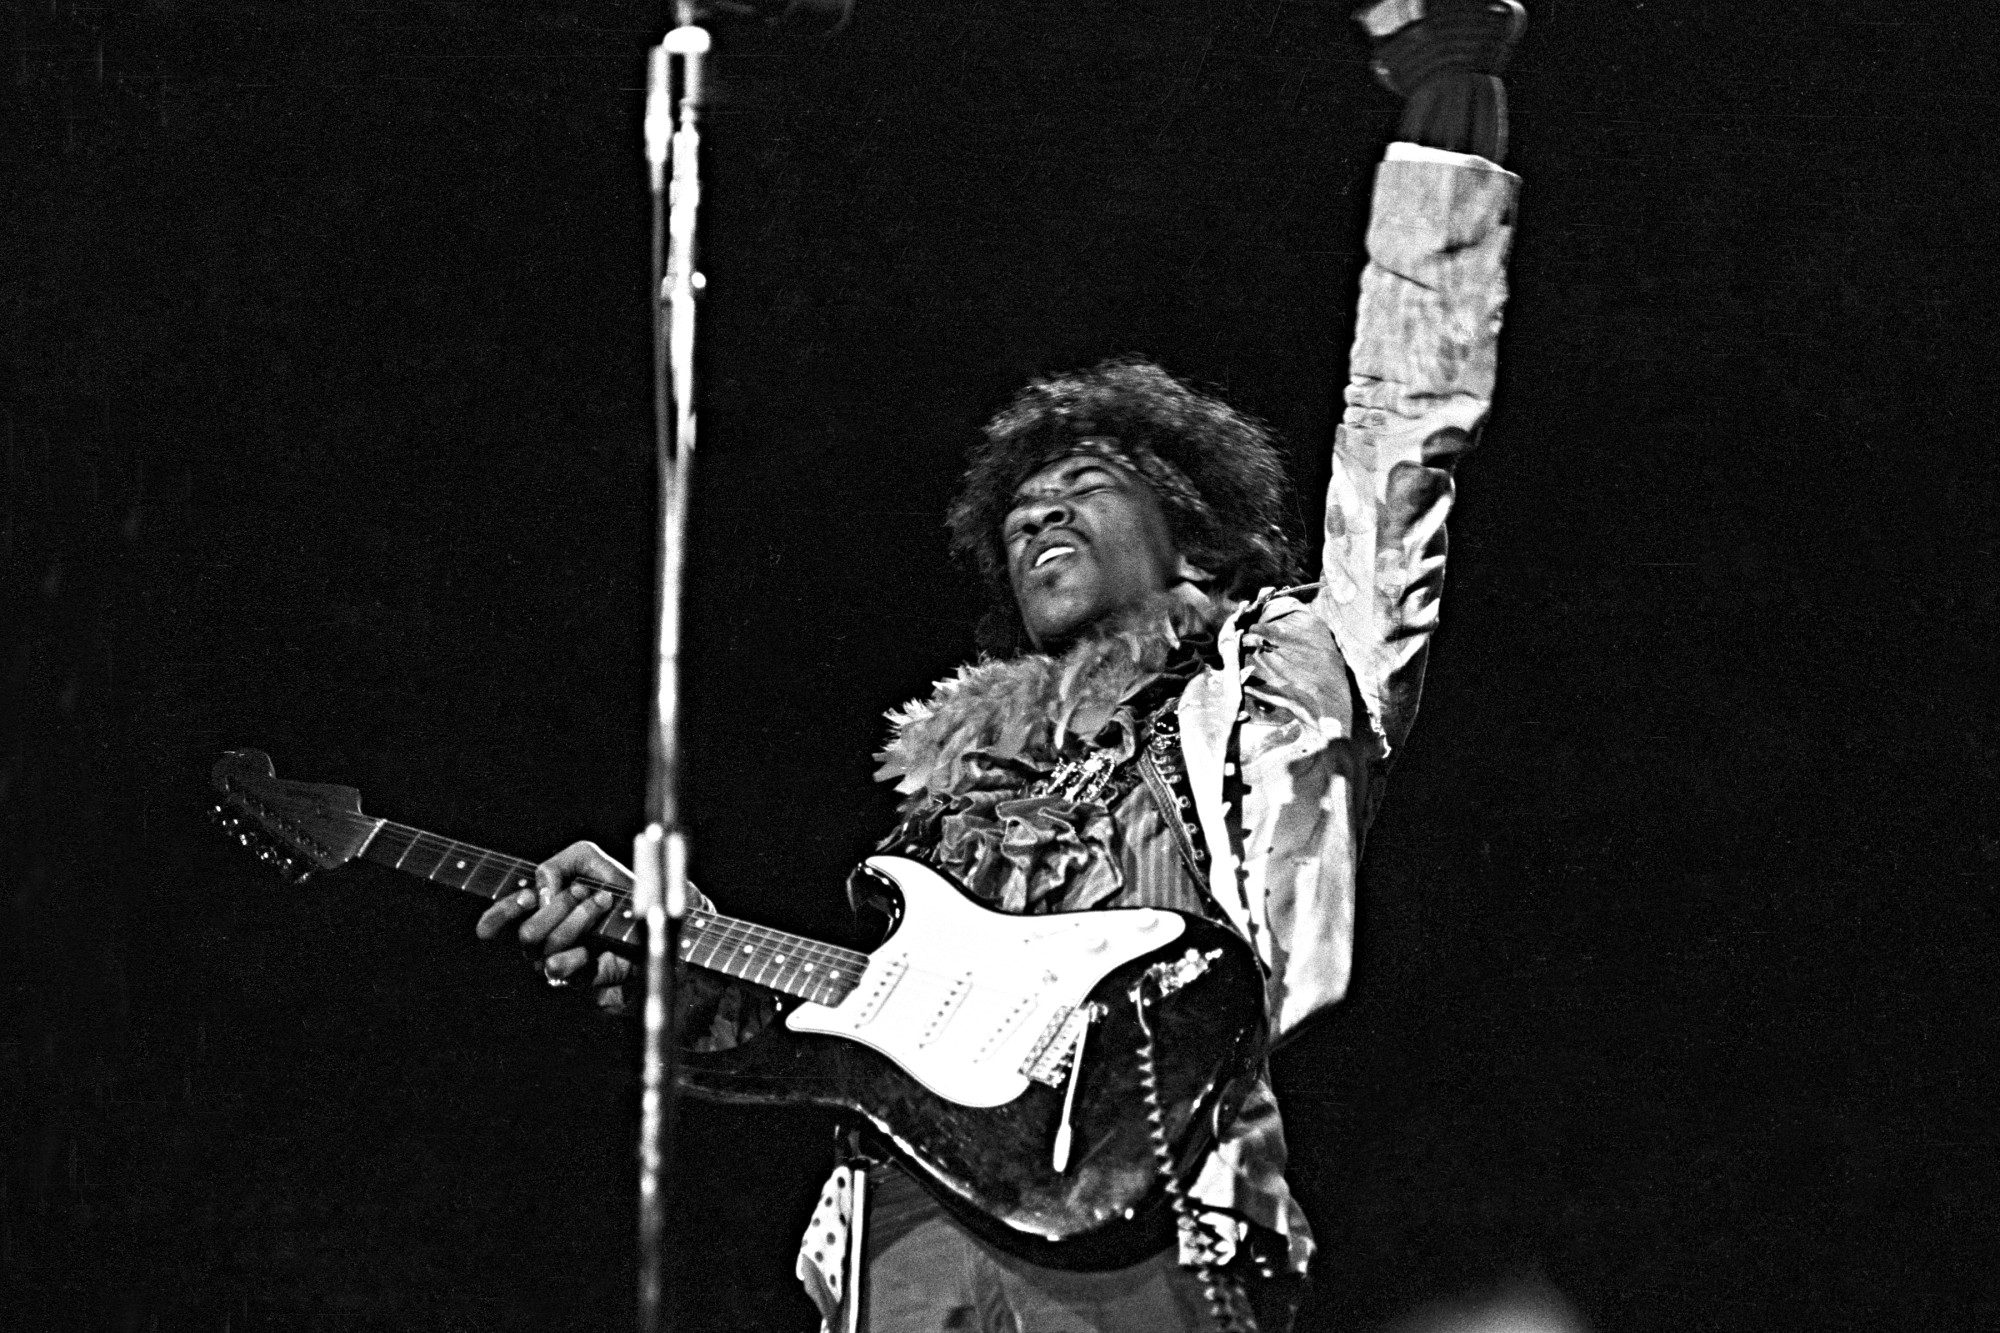 Jimi Hendrix Death Anniversary Remembering The Famed